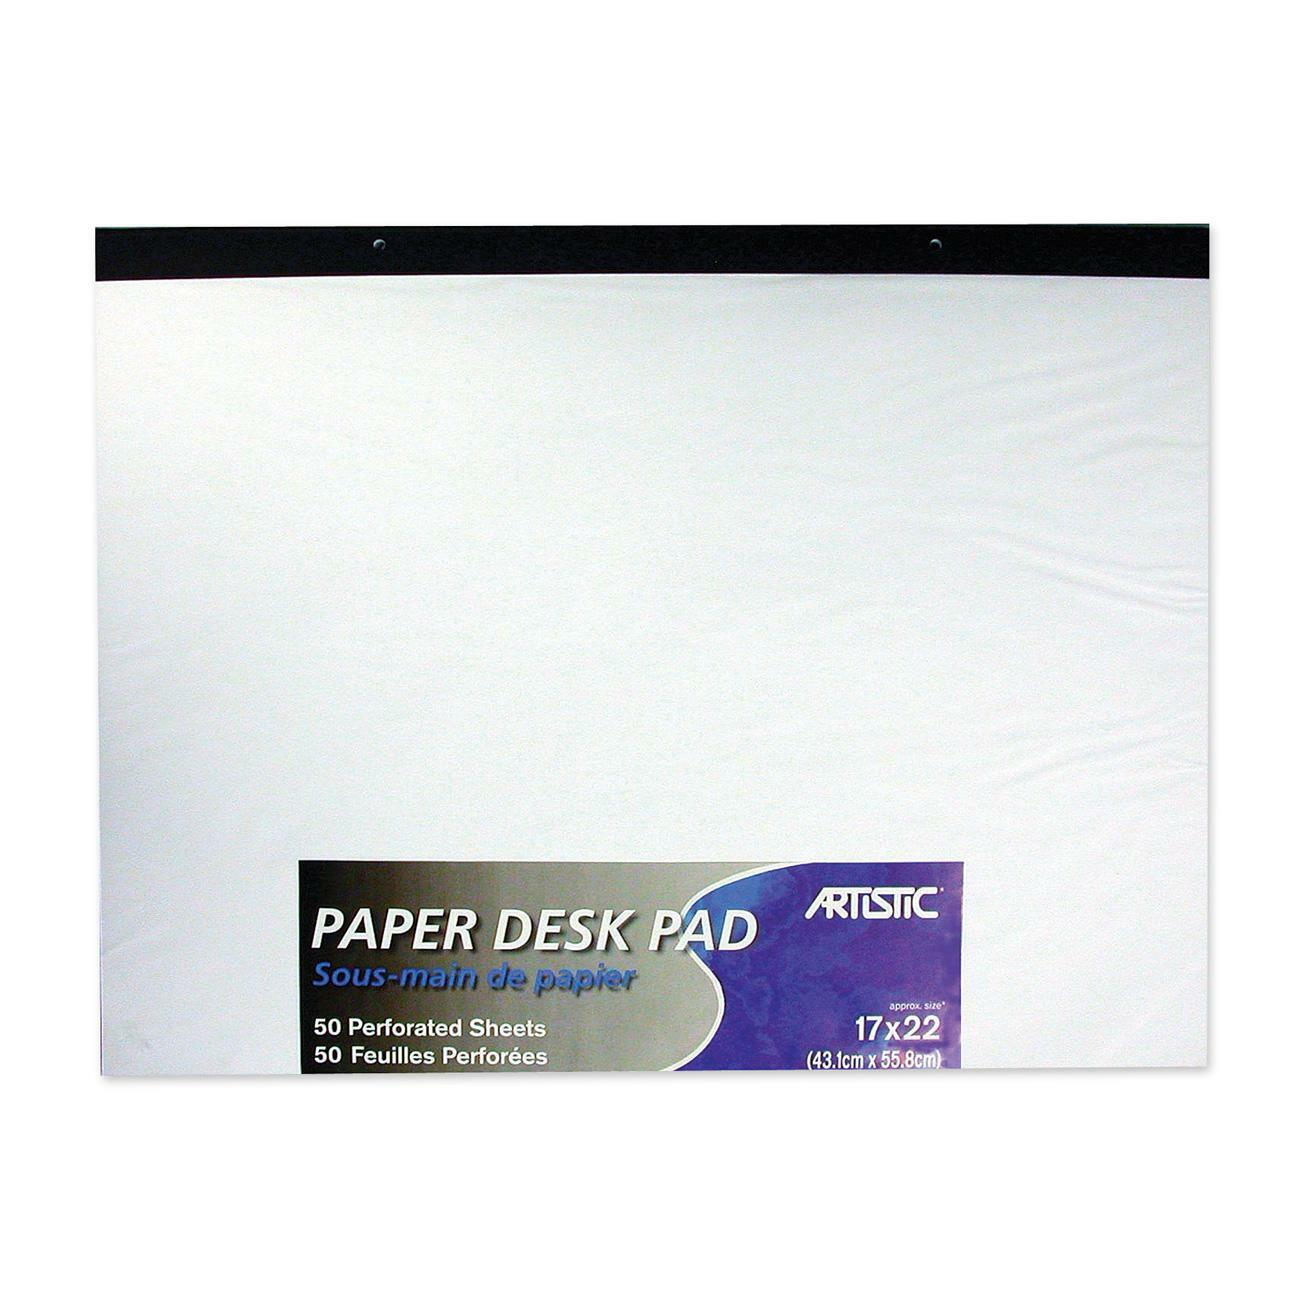 Paper Desk Pad Offers 50 Sheets Of Quality Plain White Perforated At The Top For Easy Tear Off Smooth An Ideal Writing Surface Notes